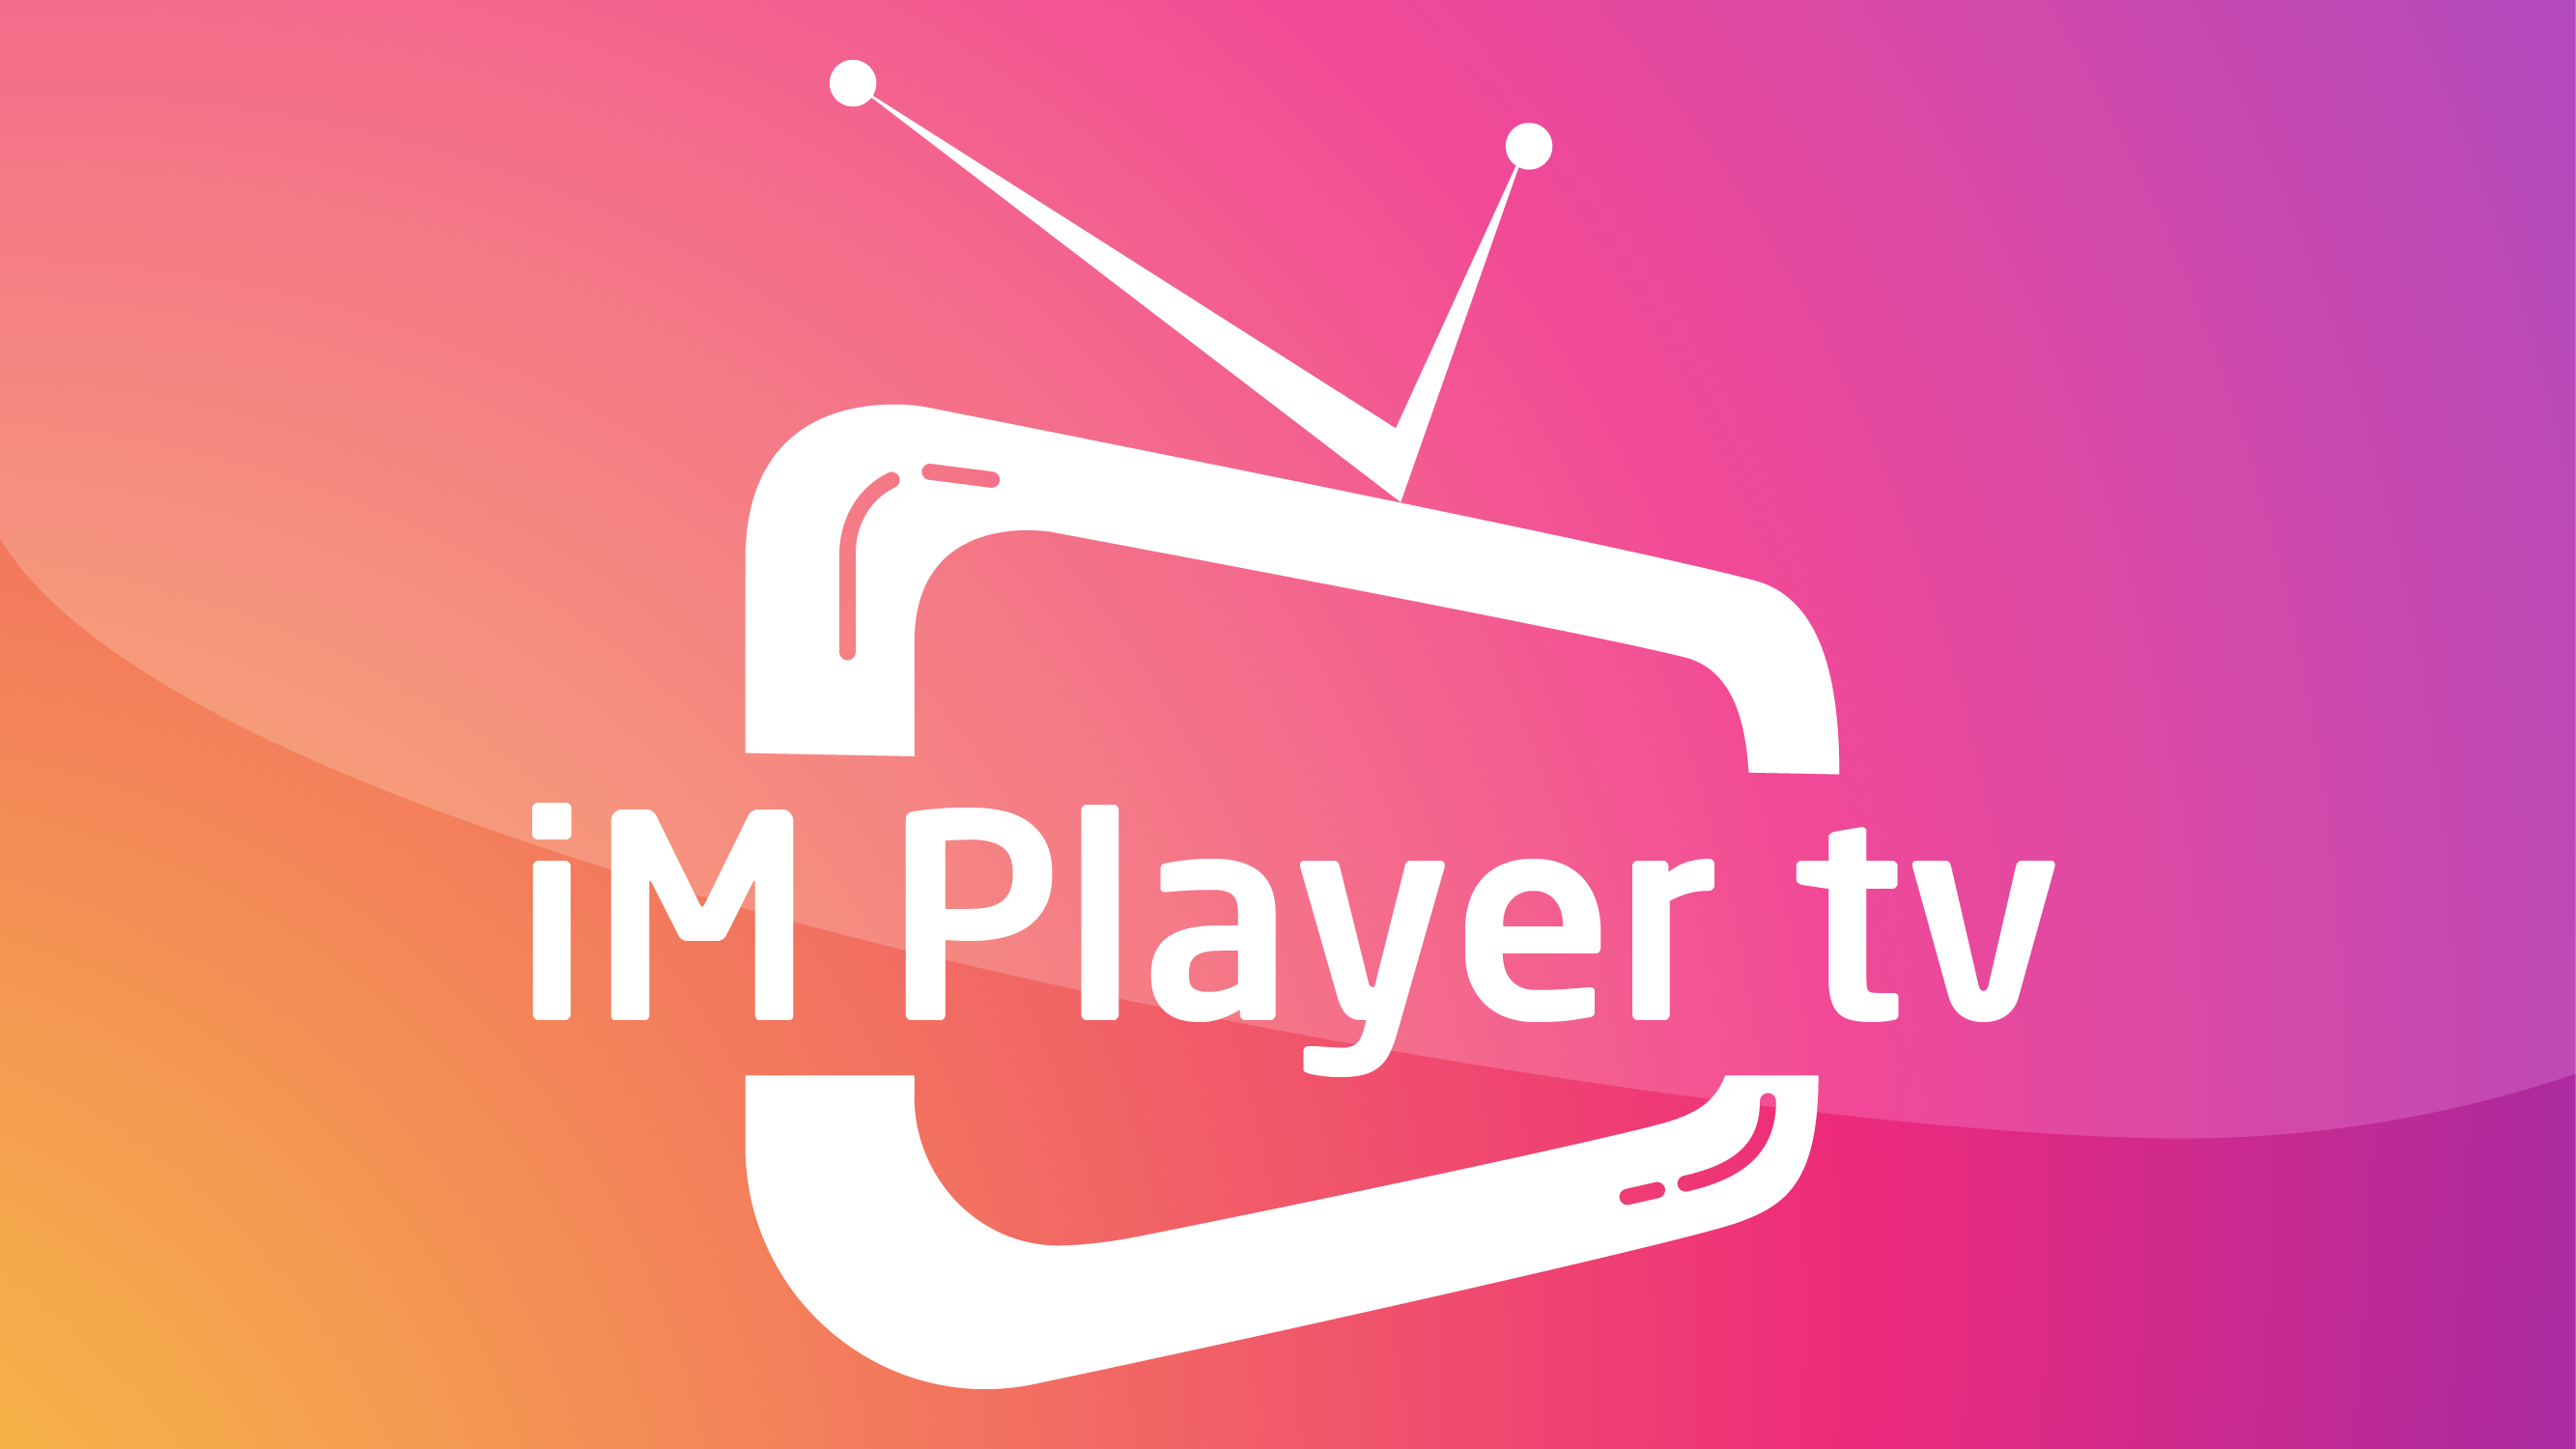 iMPlayer TV